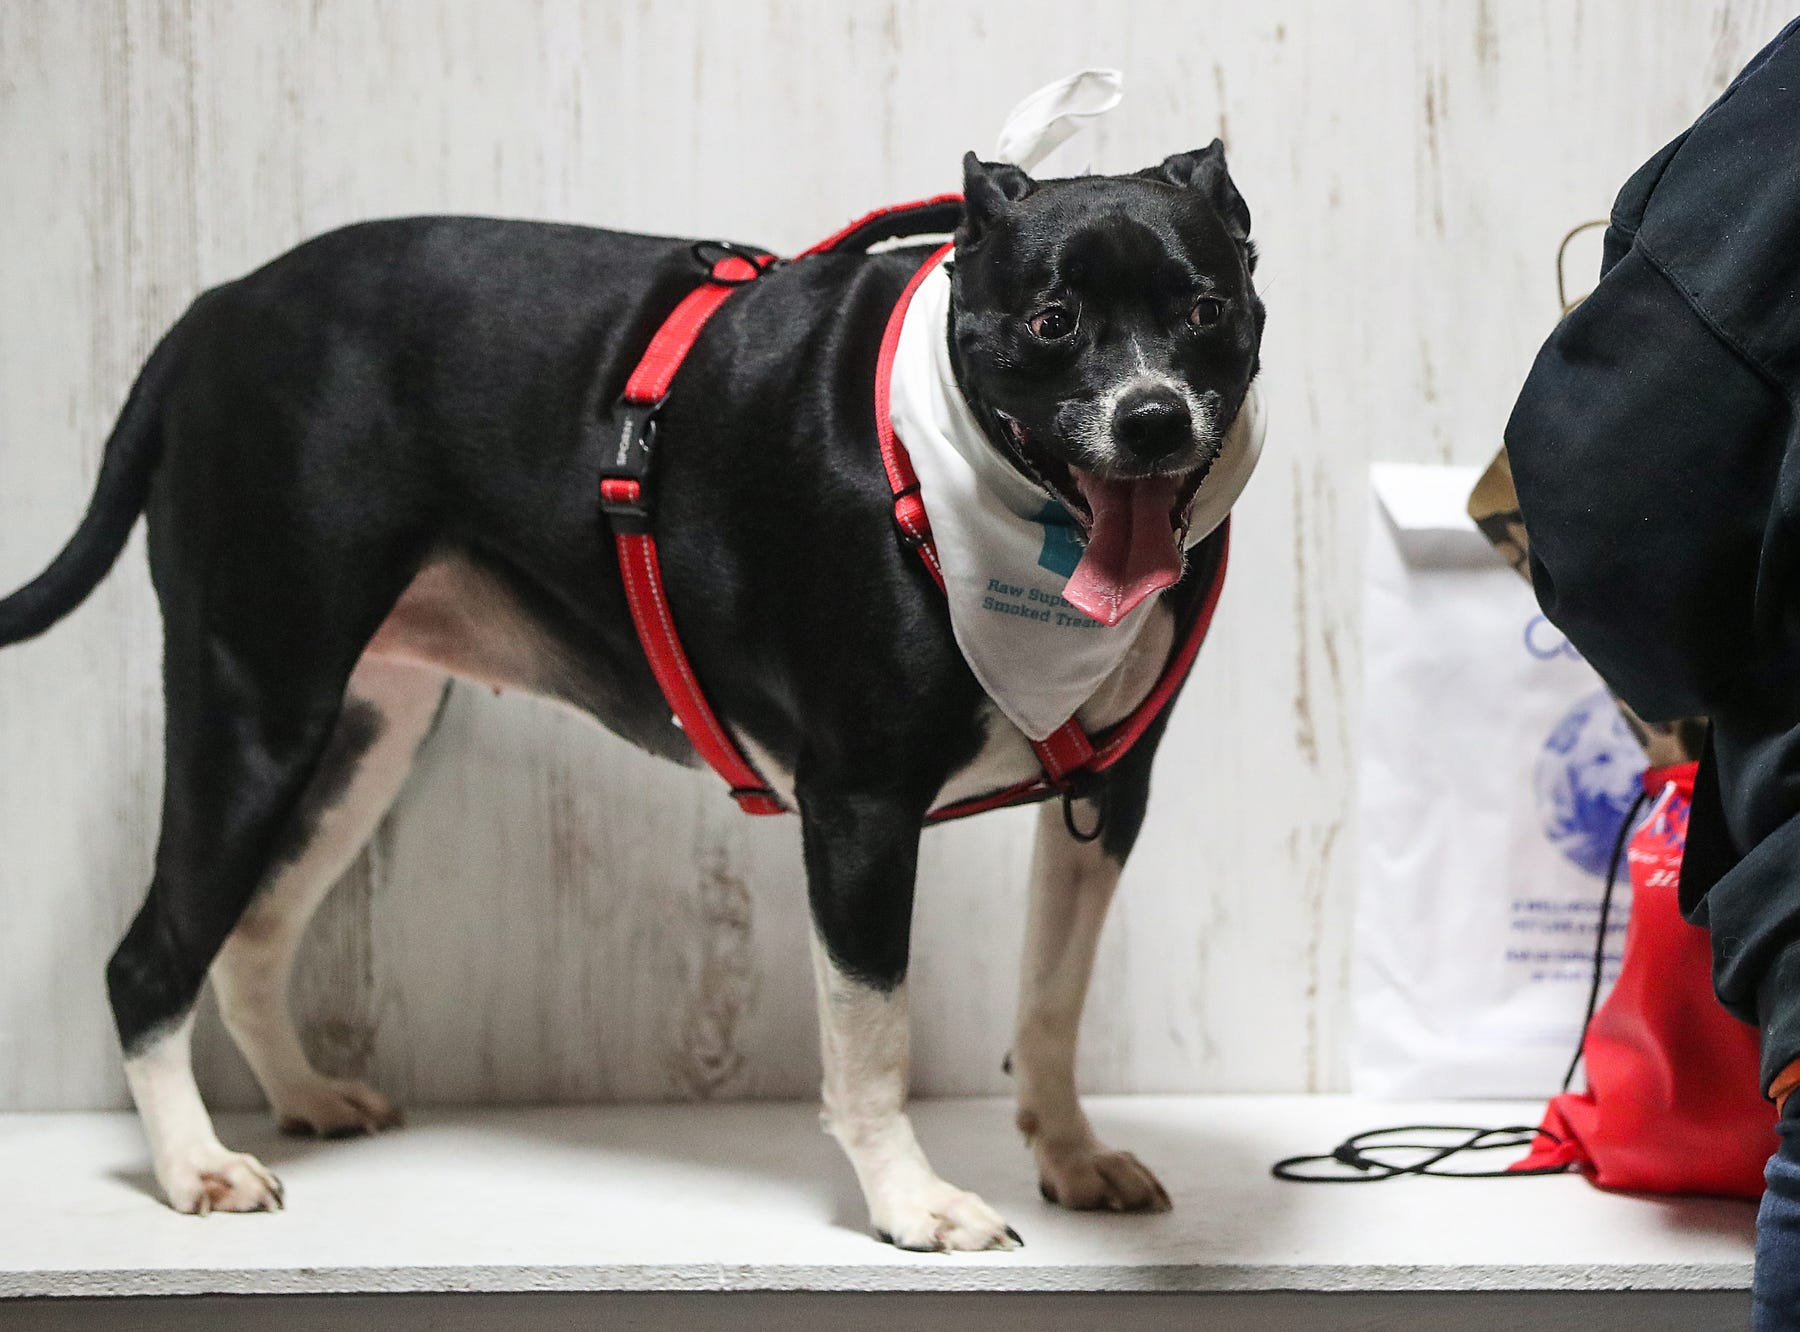 A dog named Maddie is seen during the grand opening of Indy's Indoor Bark Park in Indianapolis, Saturday, Jan, 5, 2019. The large indoor space offers owners a place to exercise their dogs regardless of the weather. Membership options include single-day, multi-day and annual passes.